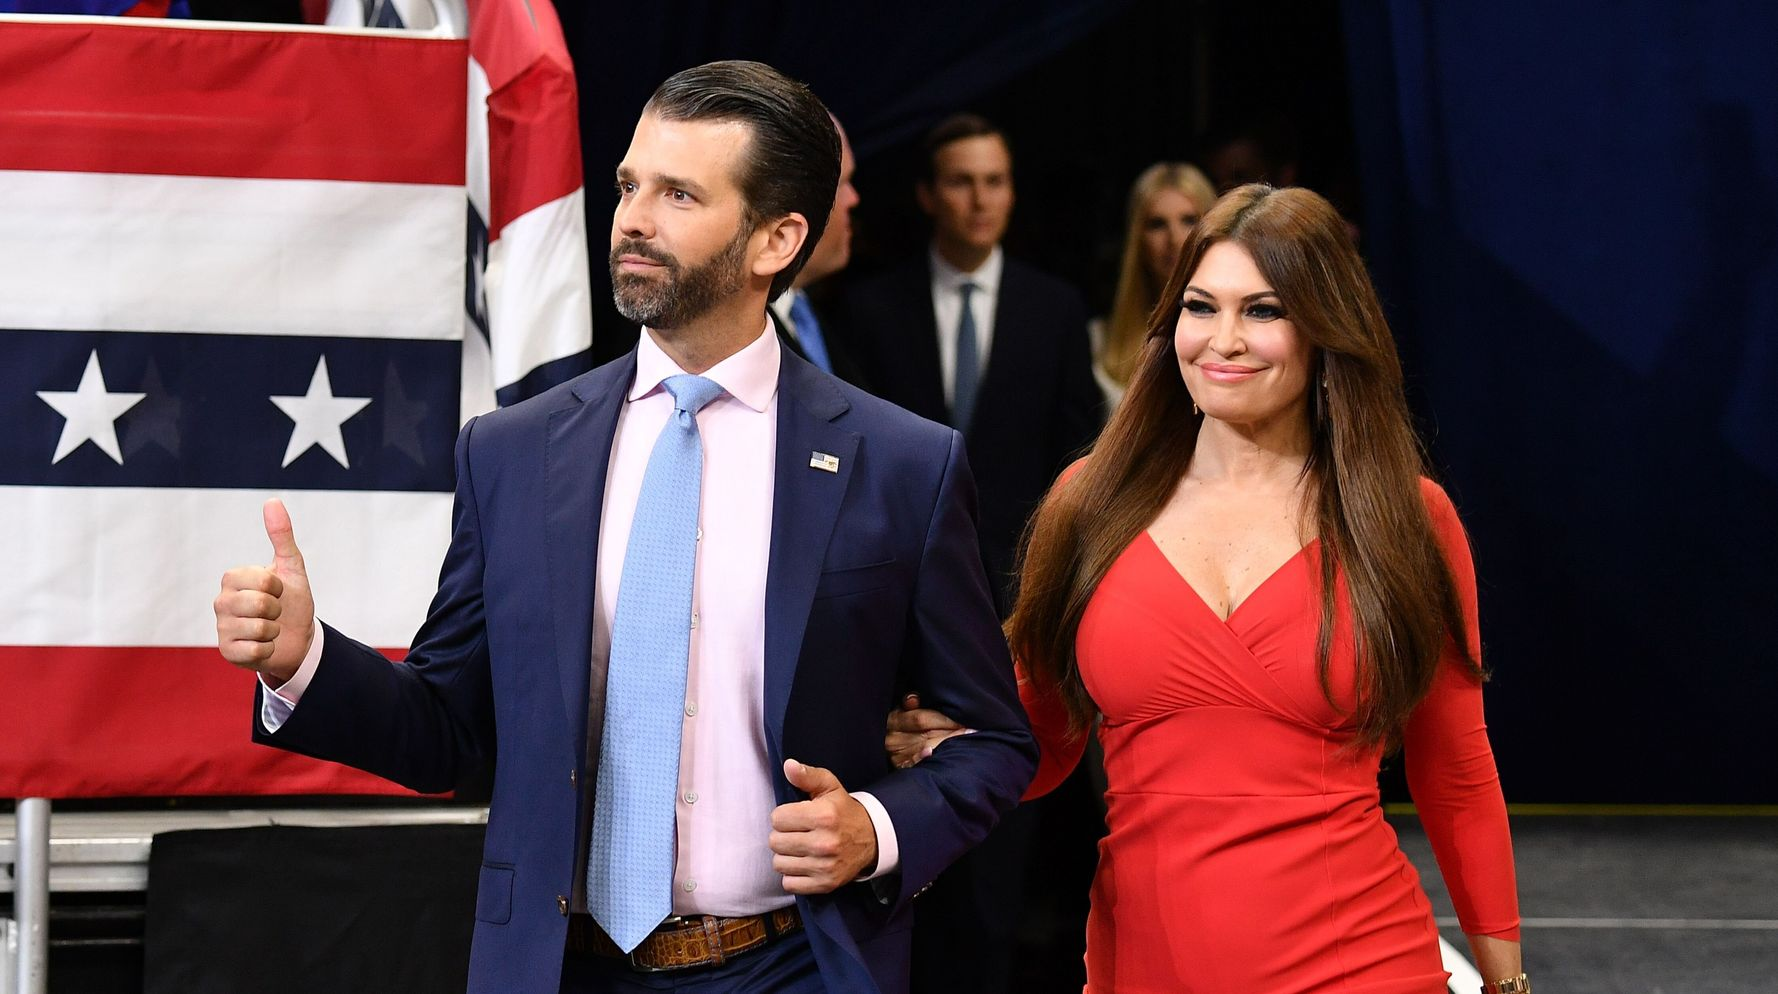 Trump Campaign Secretly Paying $180,000 A Year To His Sons' Significant Others